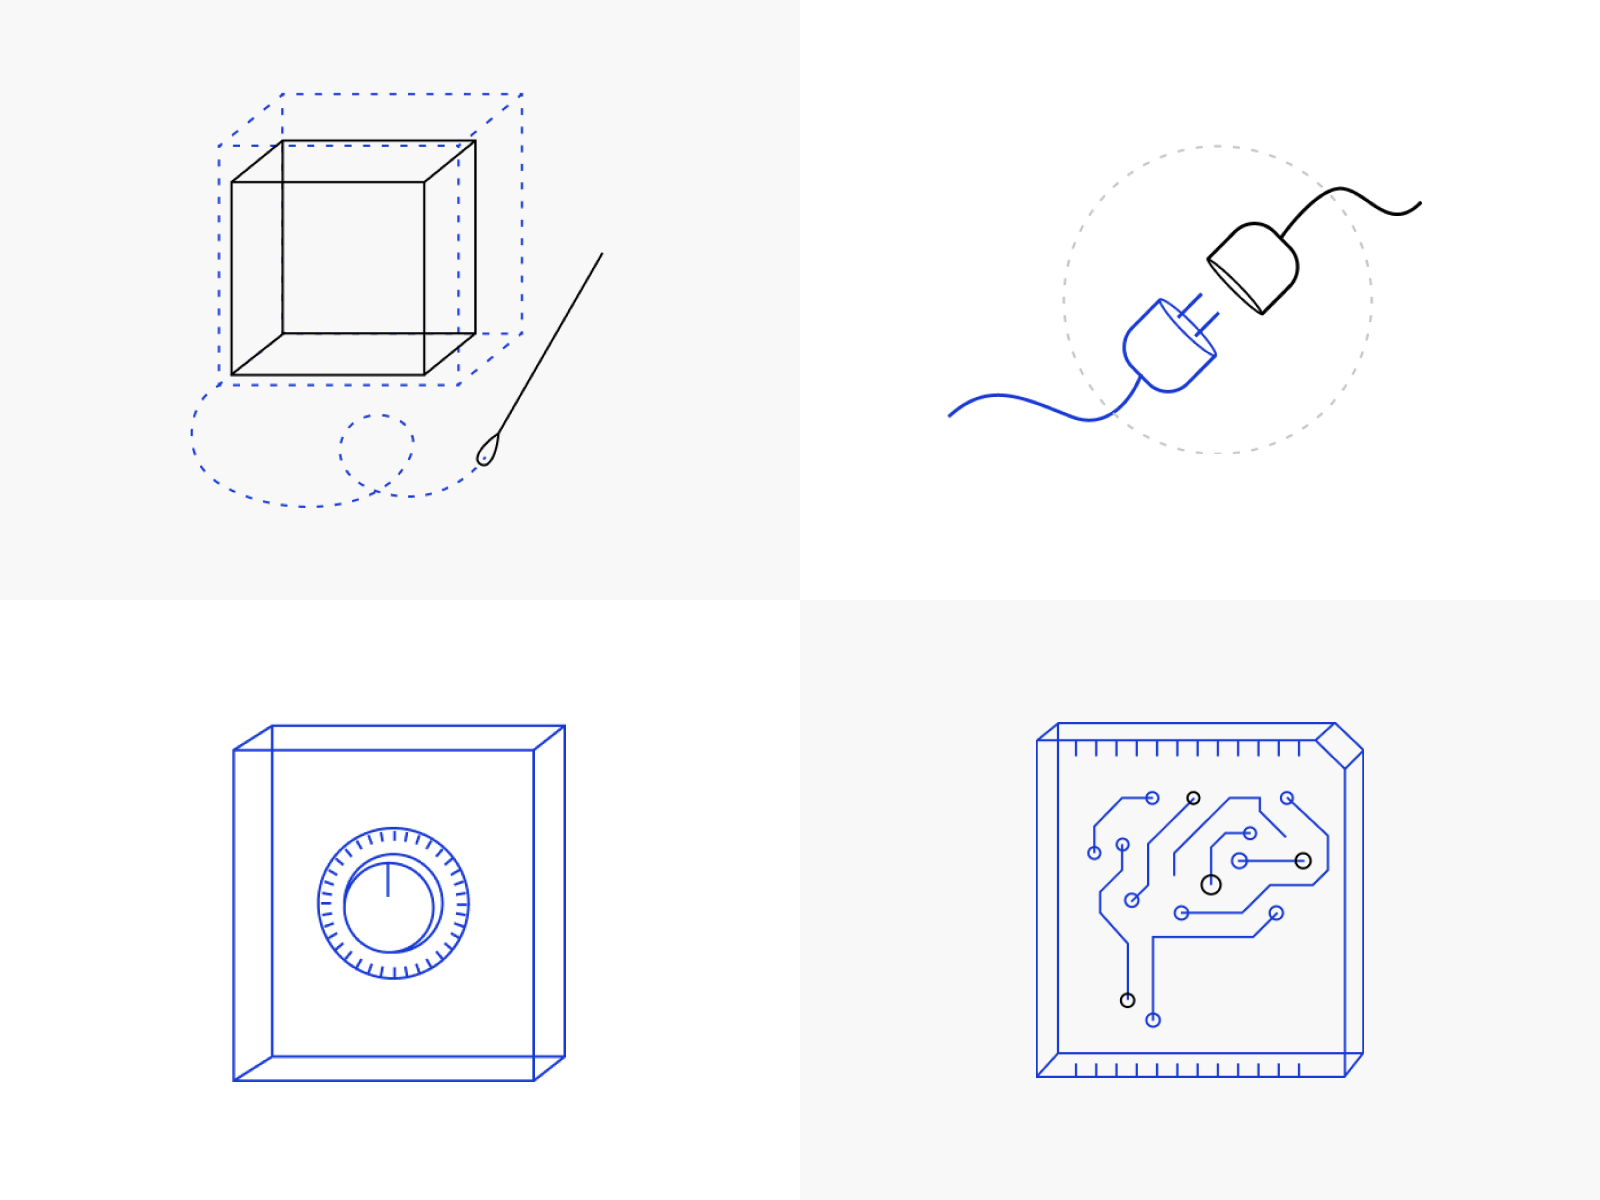 Logicluster illustrations 4x